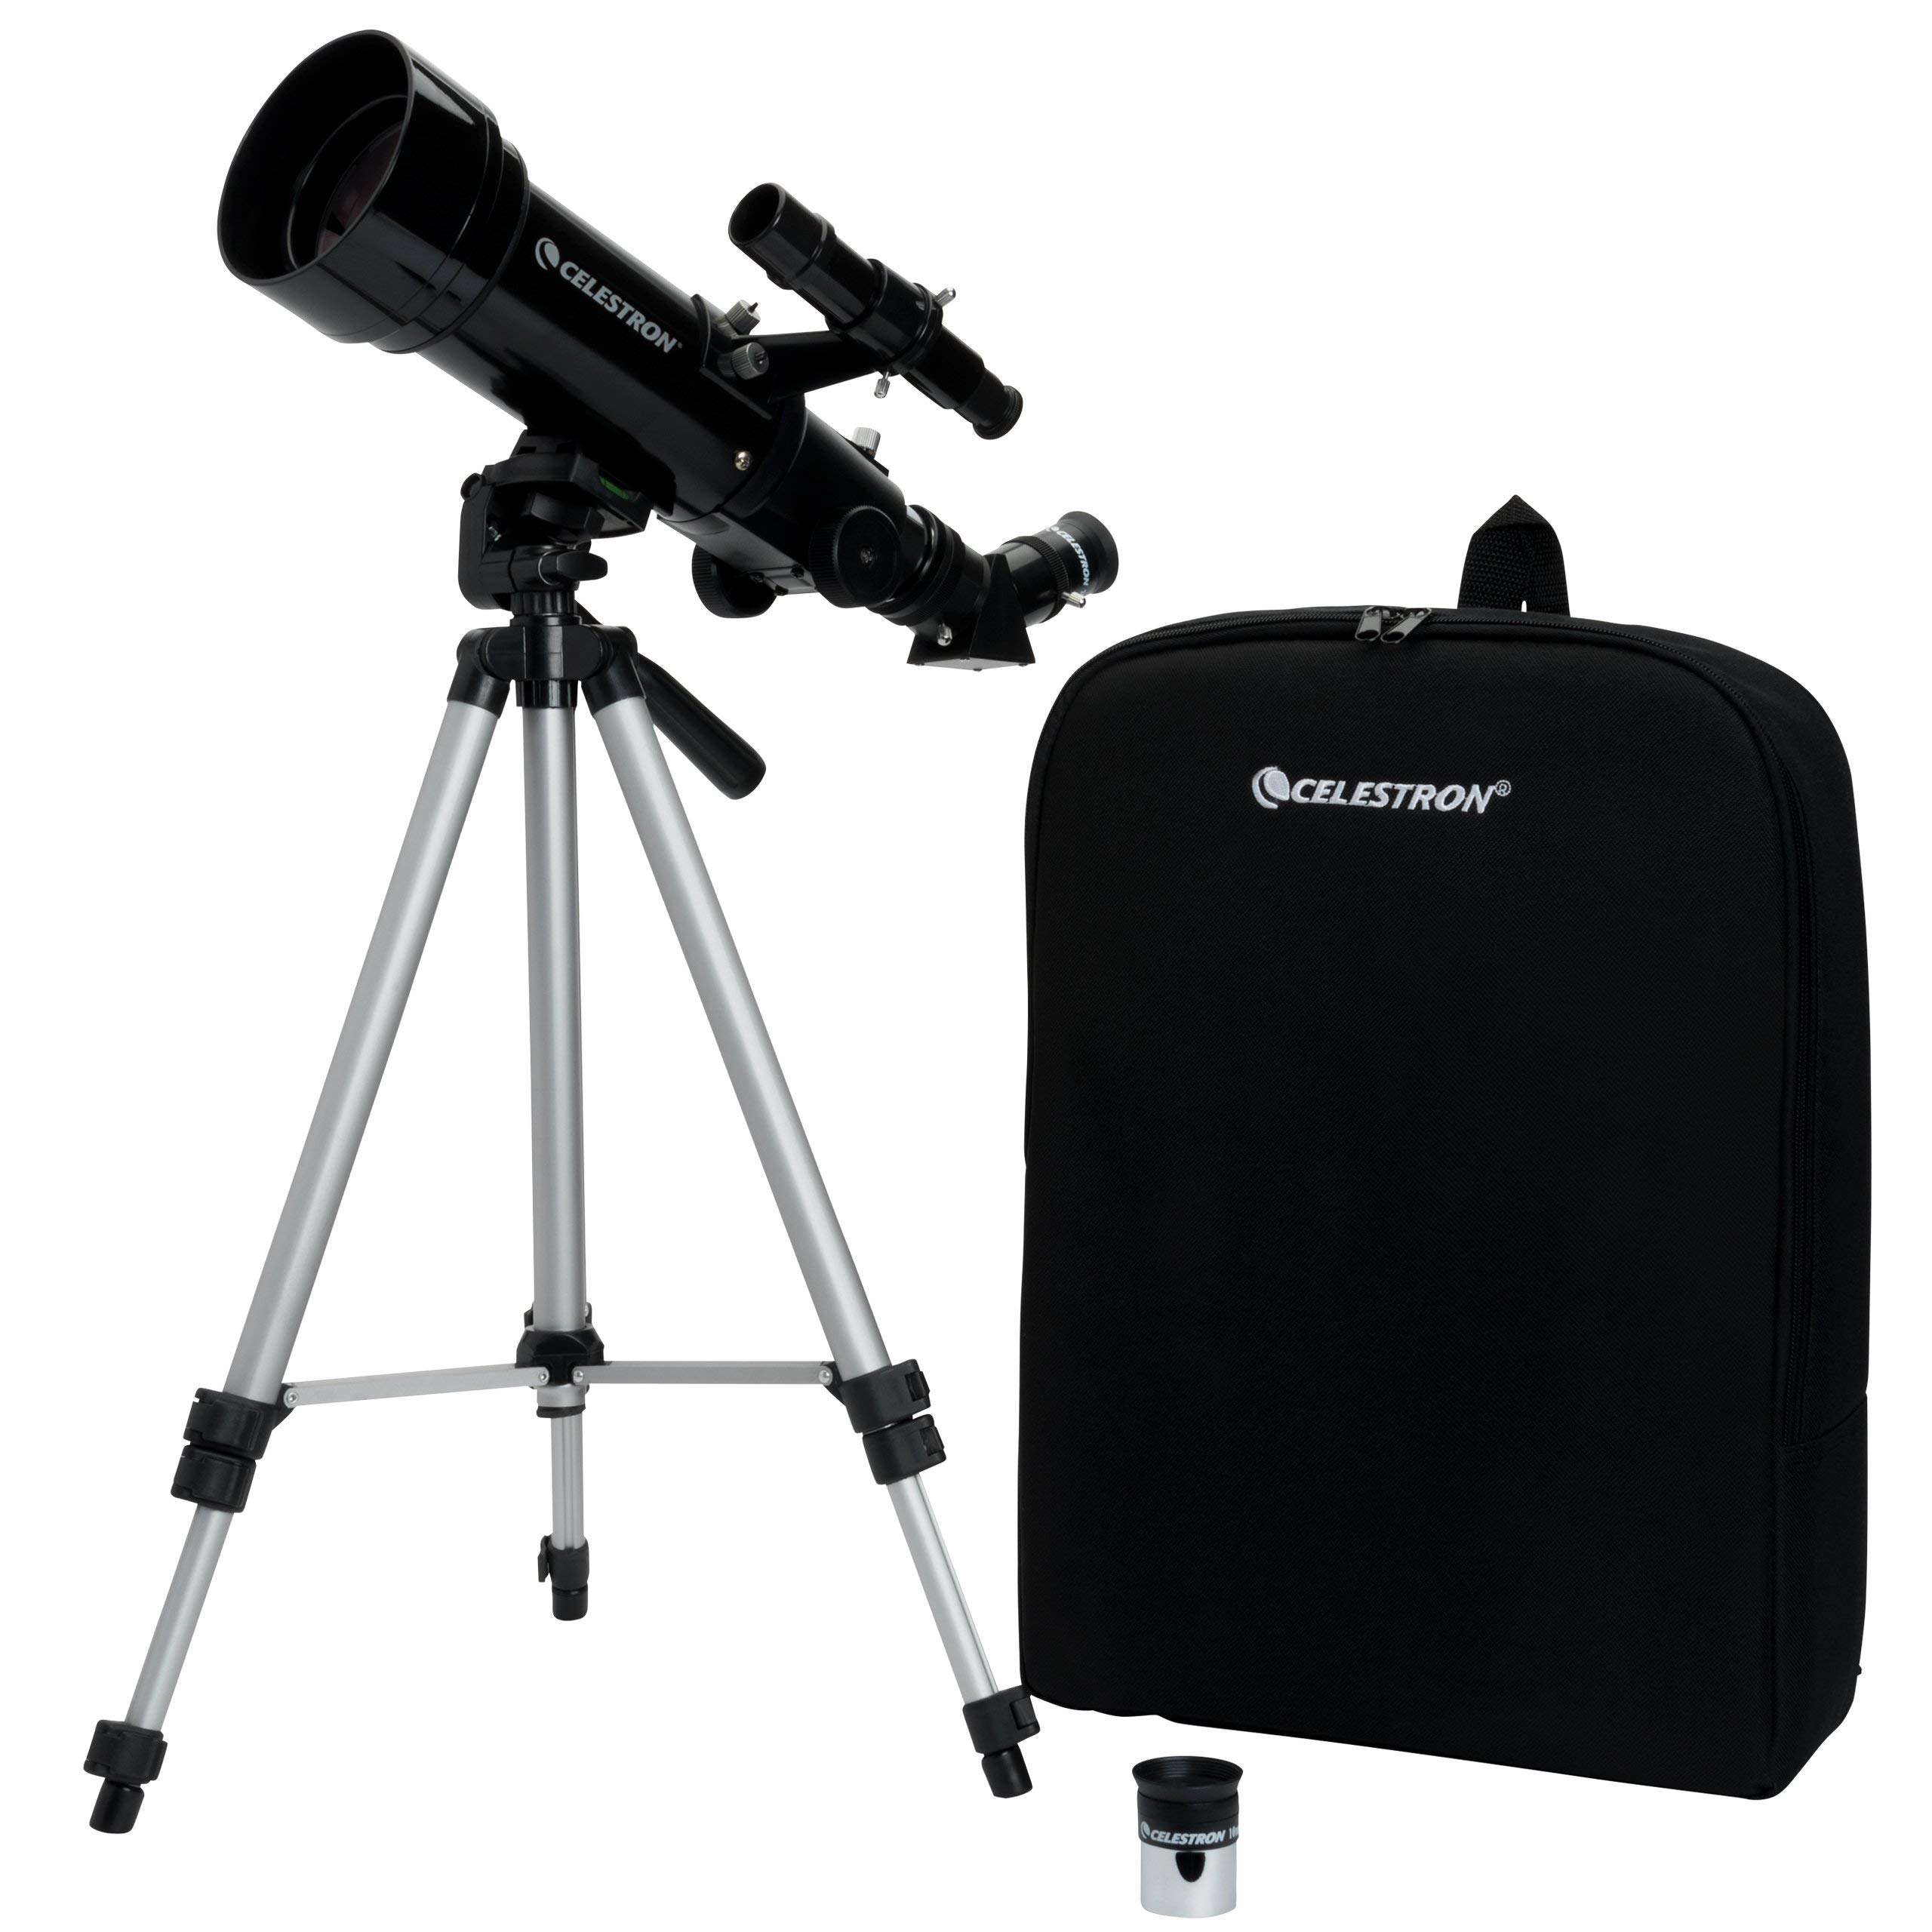 Celestron 21035 70mm Travel Scope (Renewed) by Celestron